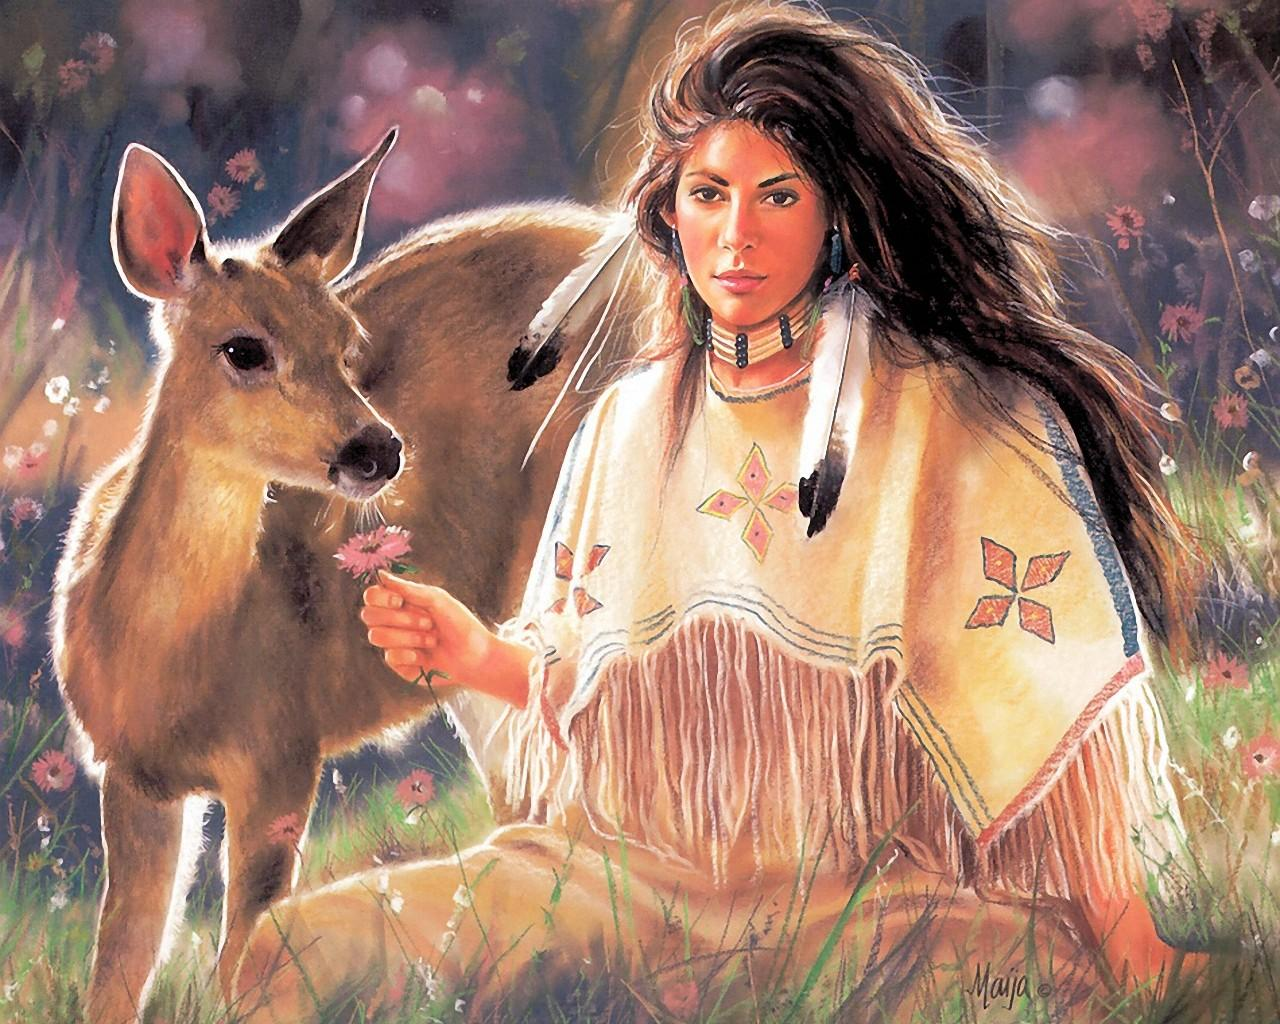 Remarkable, very Native american women fantasy art